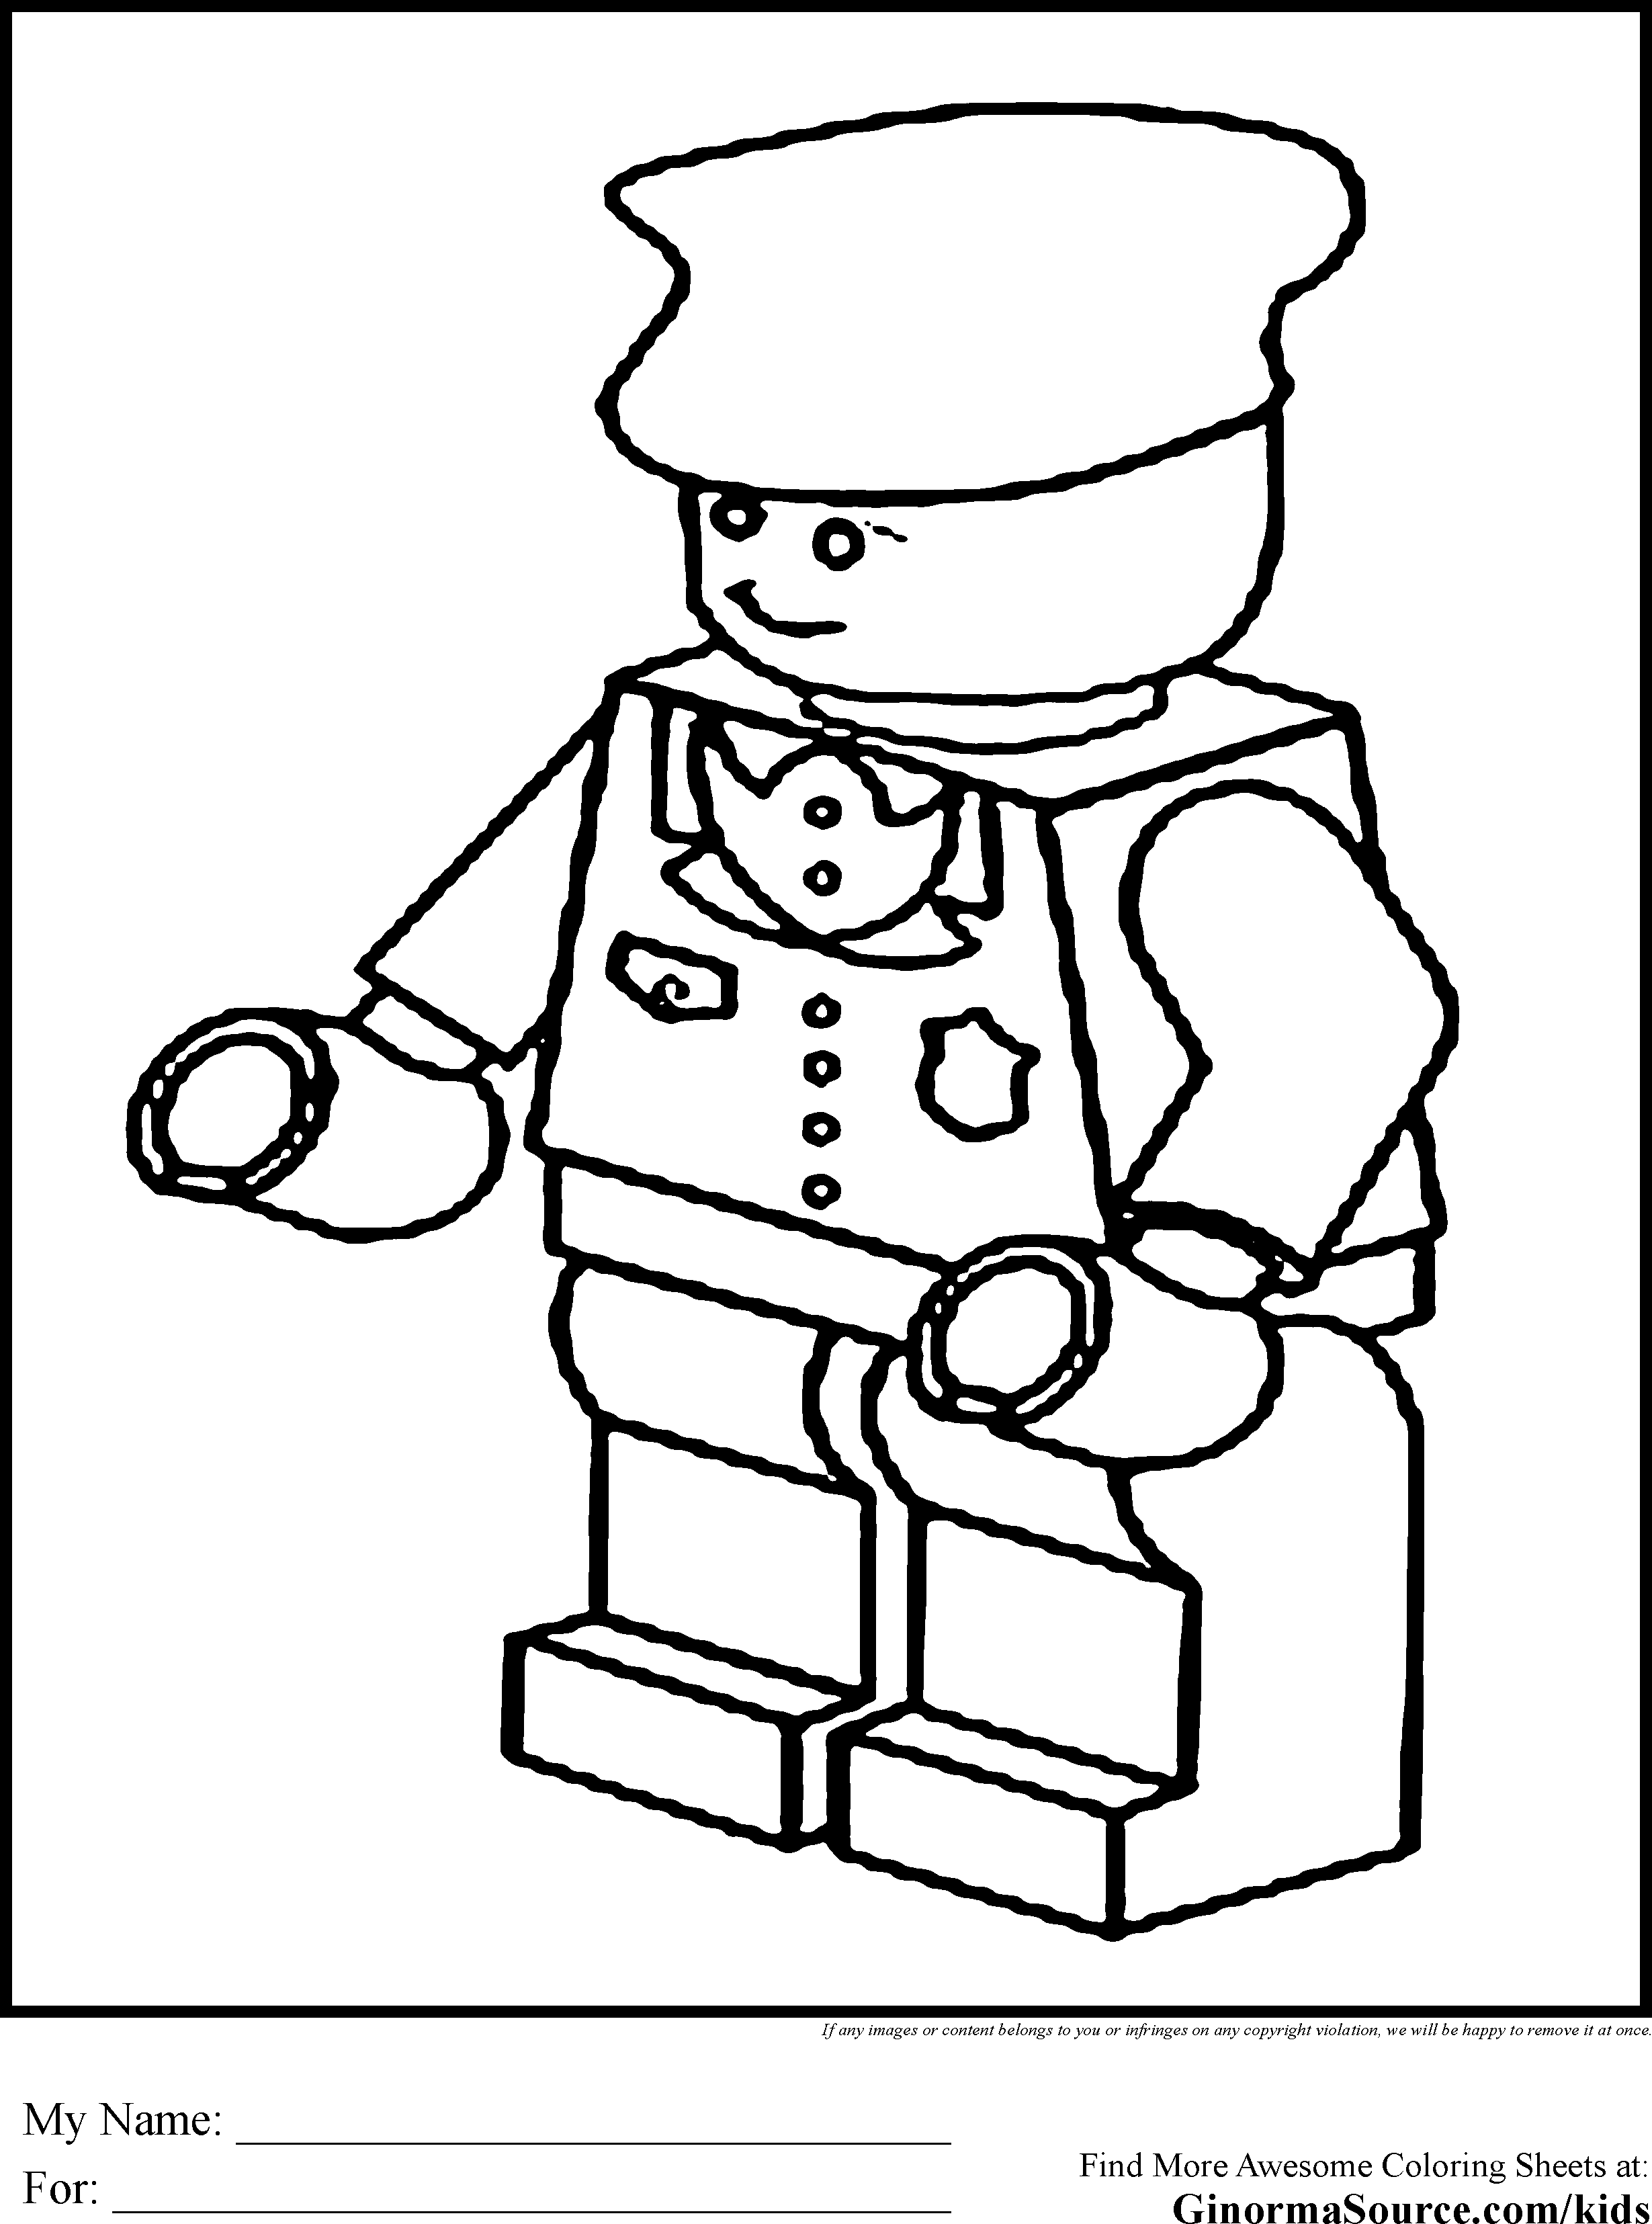 Lego Block Coloring Pages - Coloring Home